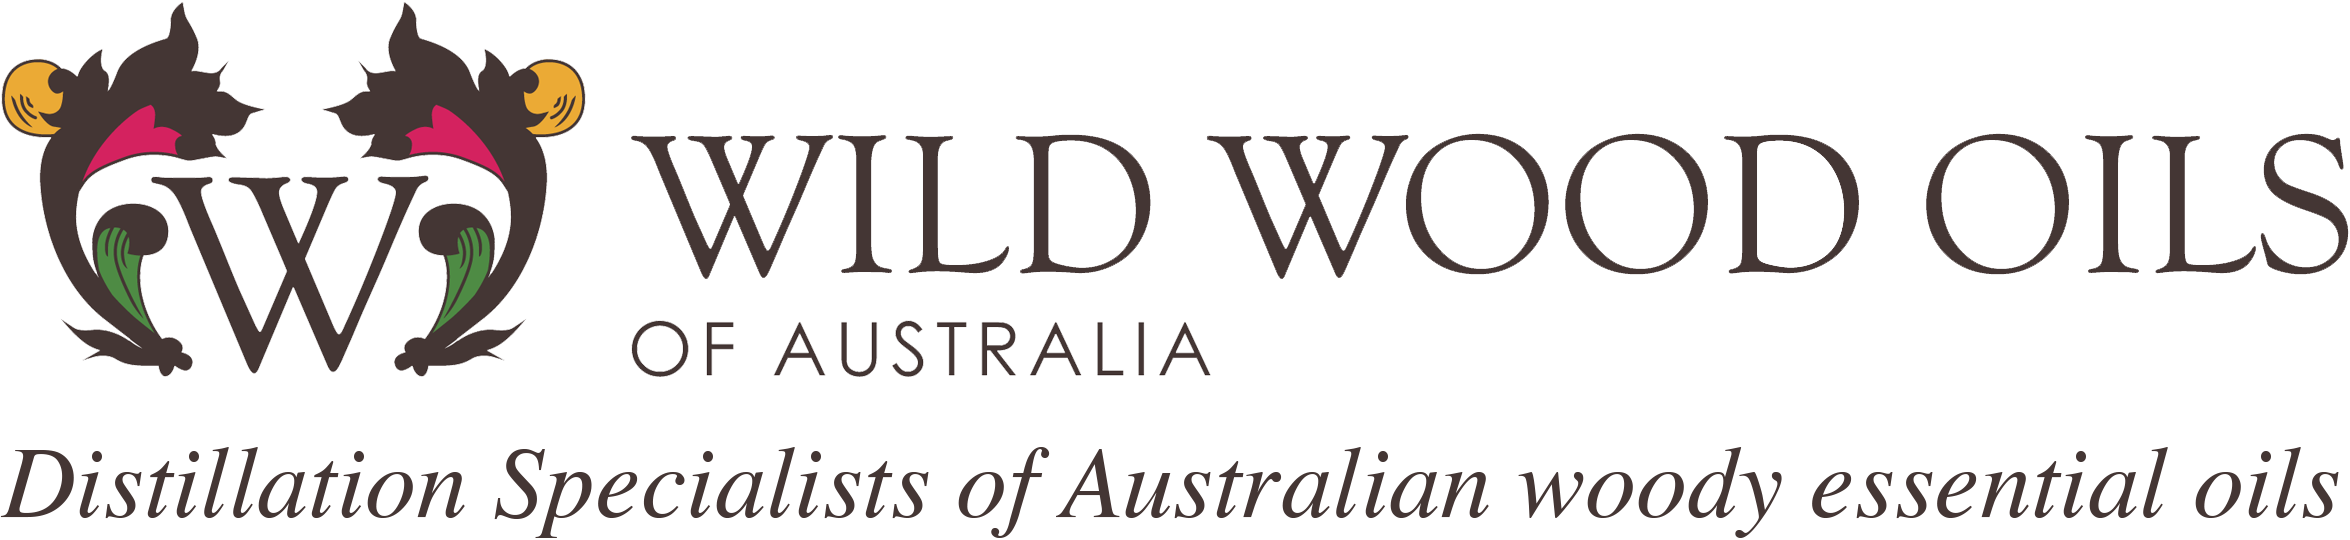 Wild Wood Oils of Australia logo